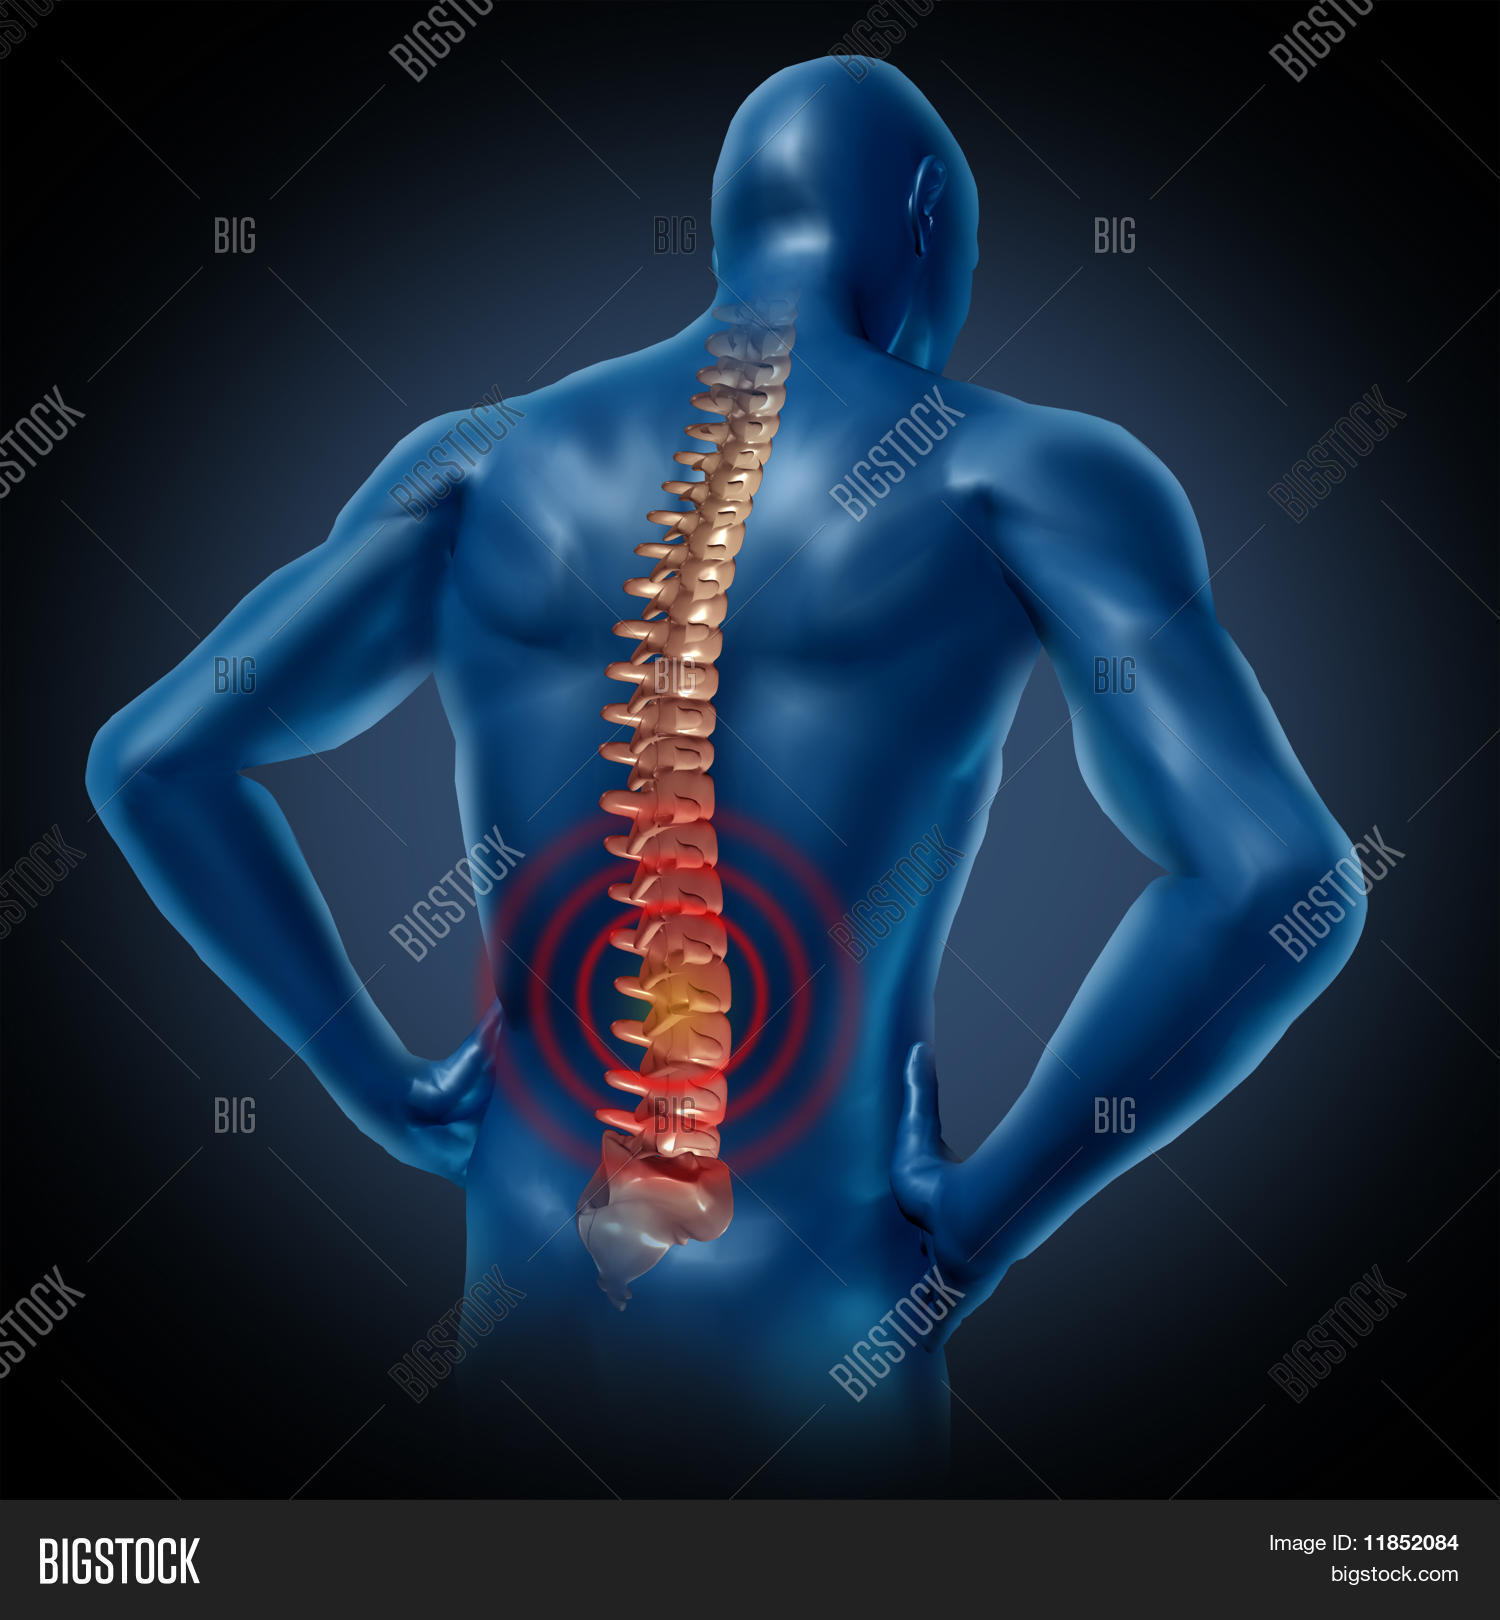 Human Back Pain Spinal Image Photo Free Trial Bigstock